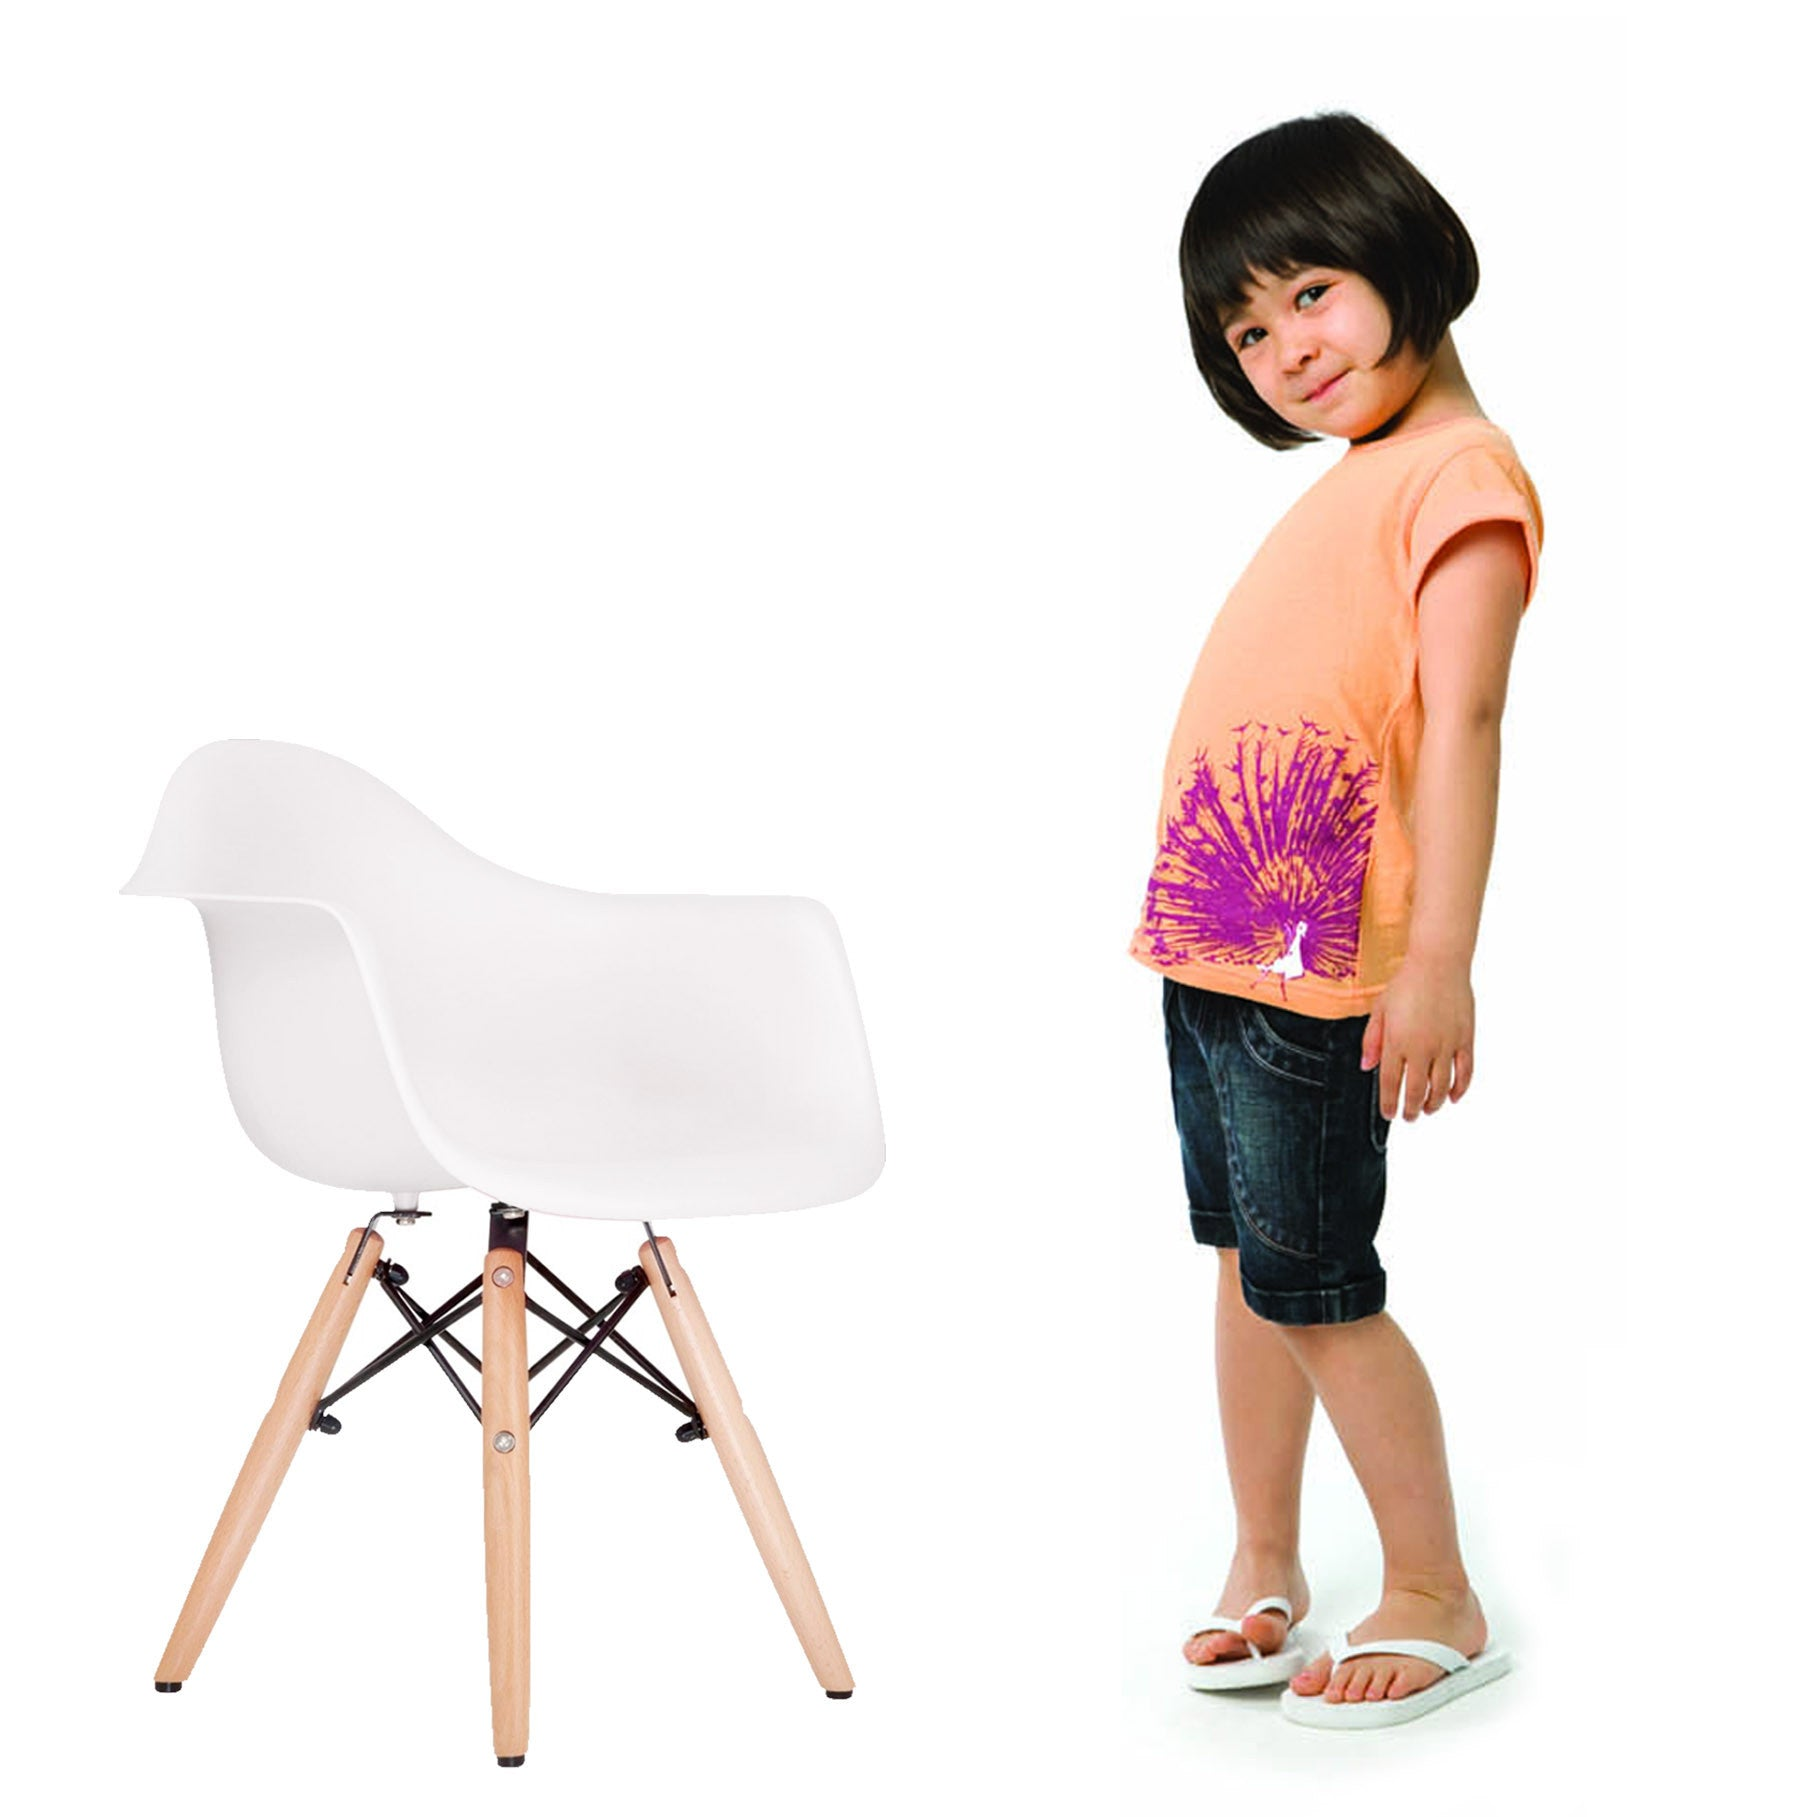 Kids Chair -Plastic- PC-0119W -  كرسي اطفال - بلاستيك - Shop Online Furniture and Home Decor Store in Dubai, UAE at ebarza